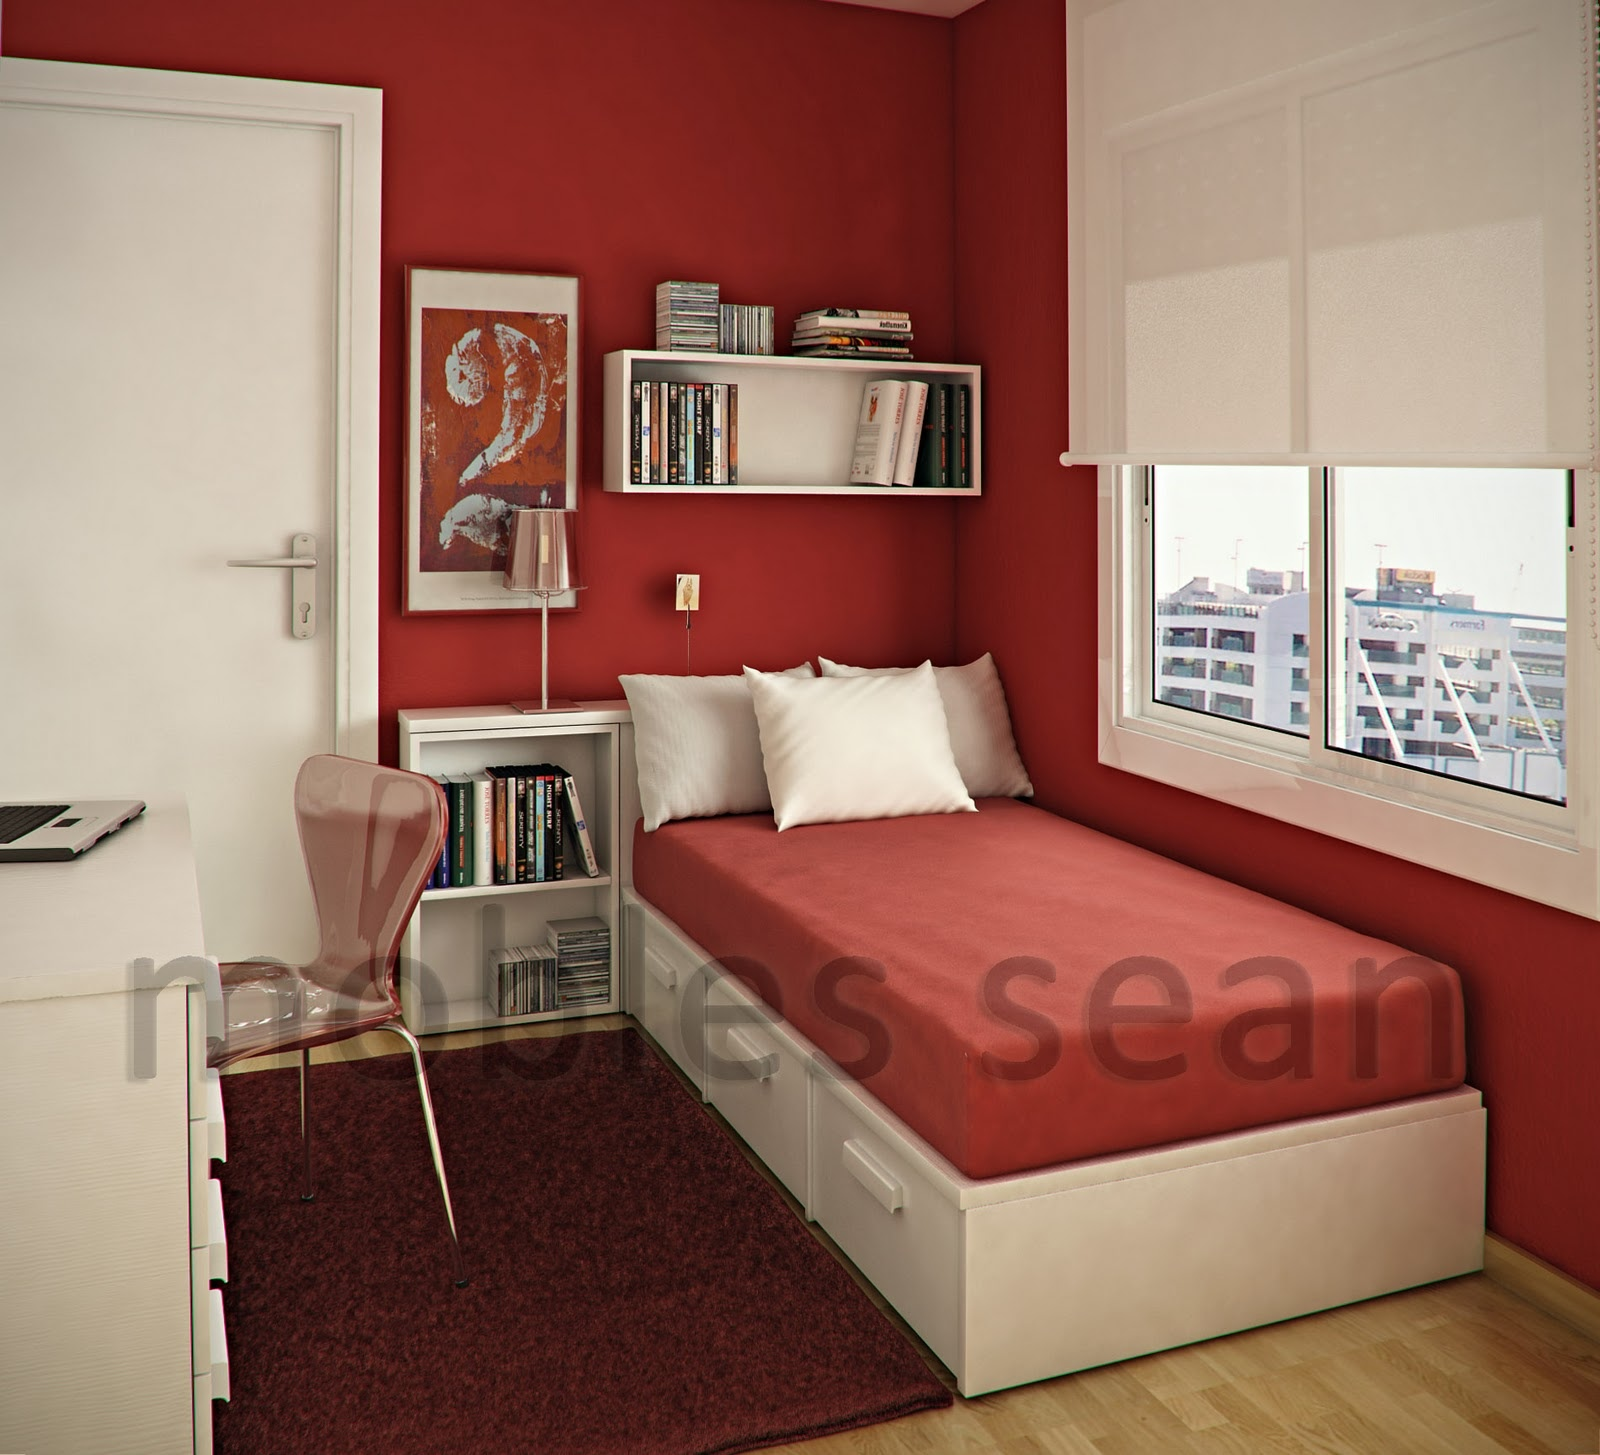 Furniture interior view space saving designs for small - Small space bedroom furniture ...